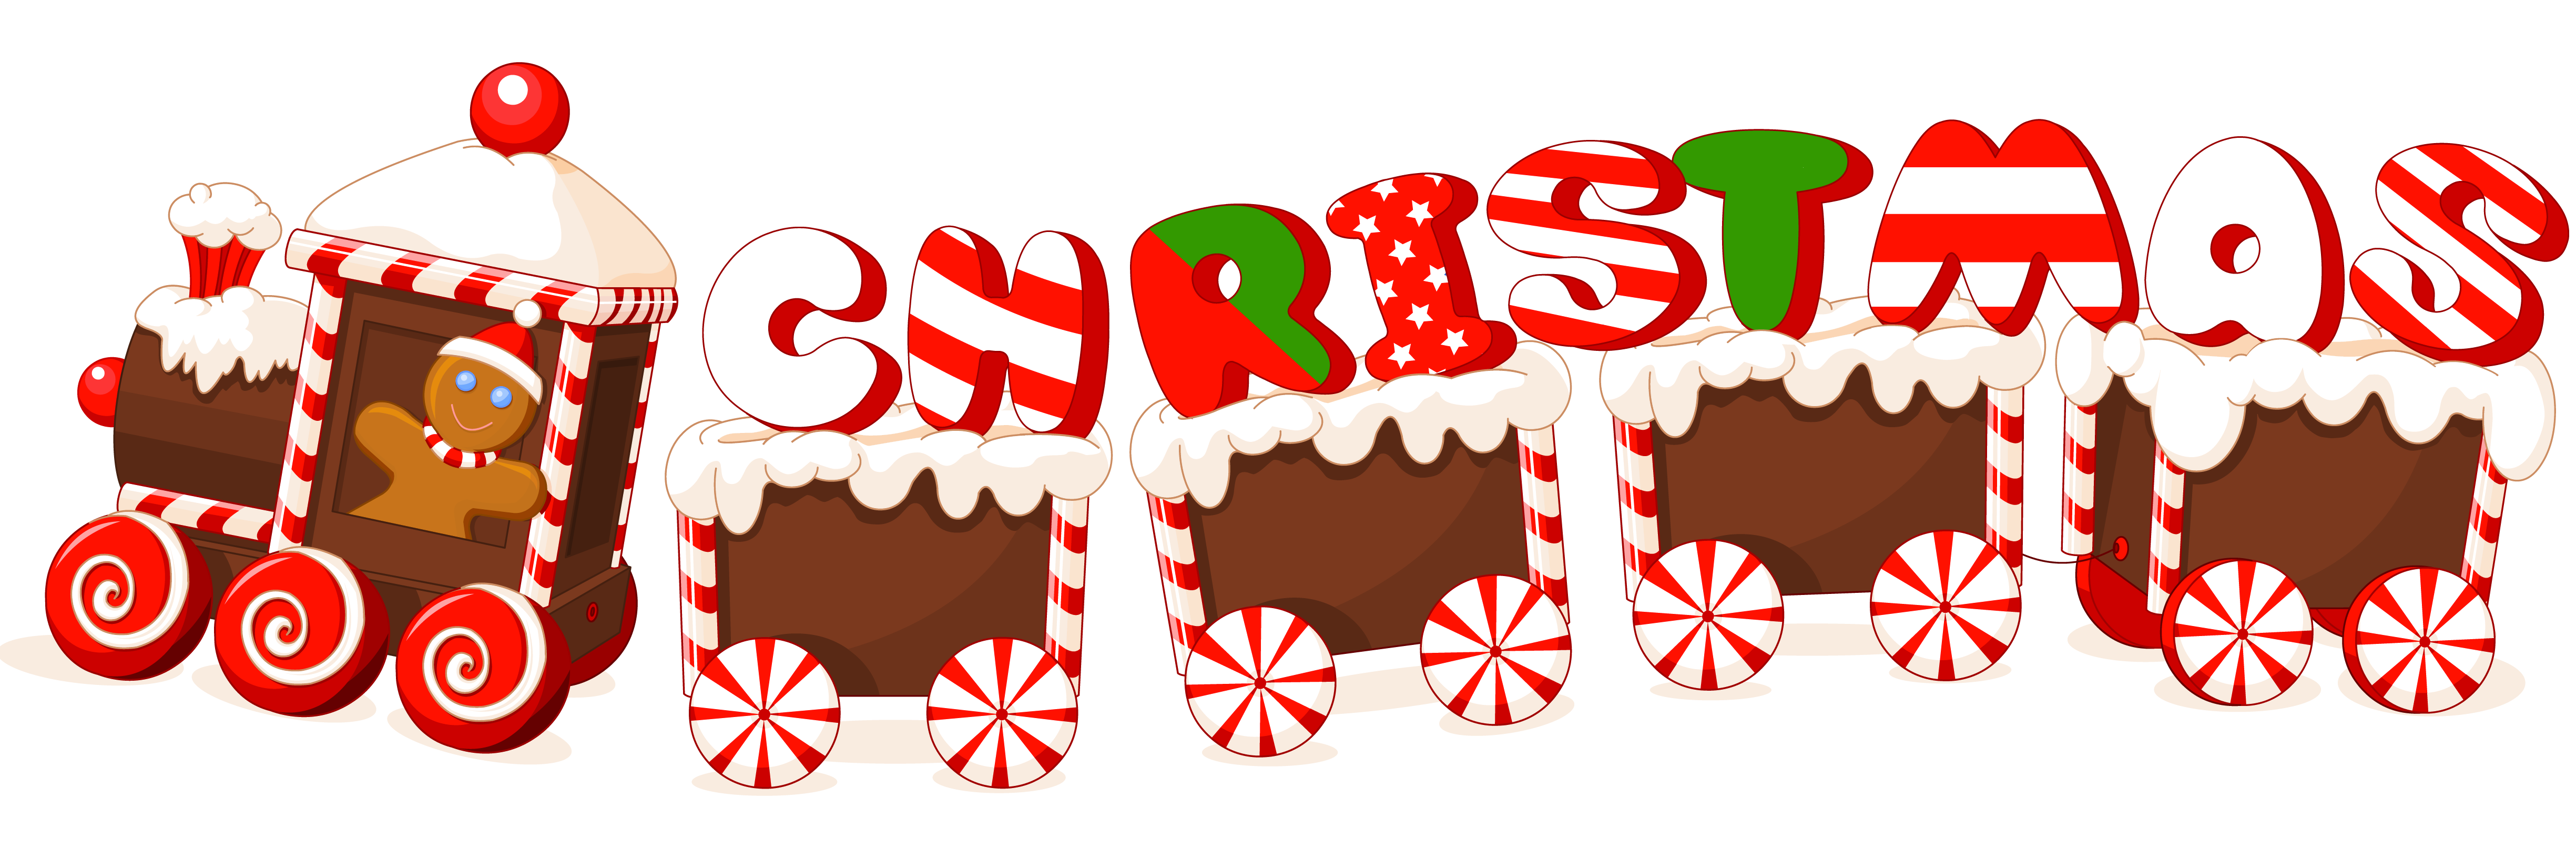 Merry Christmas Png Image #27739 - Merry Christmas Text PNG